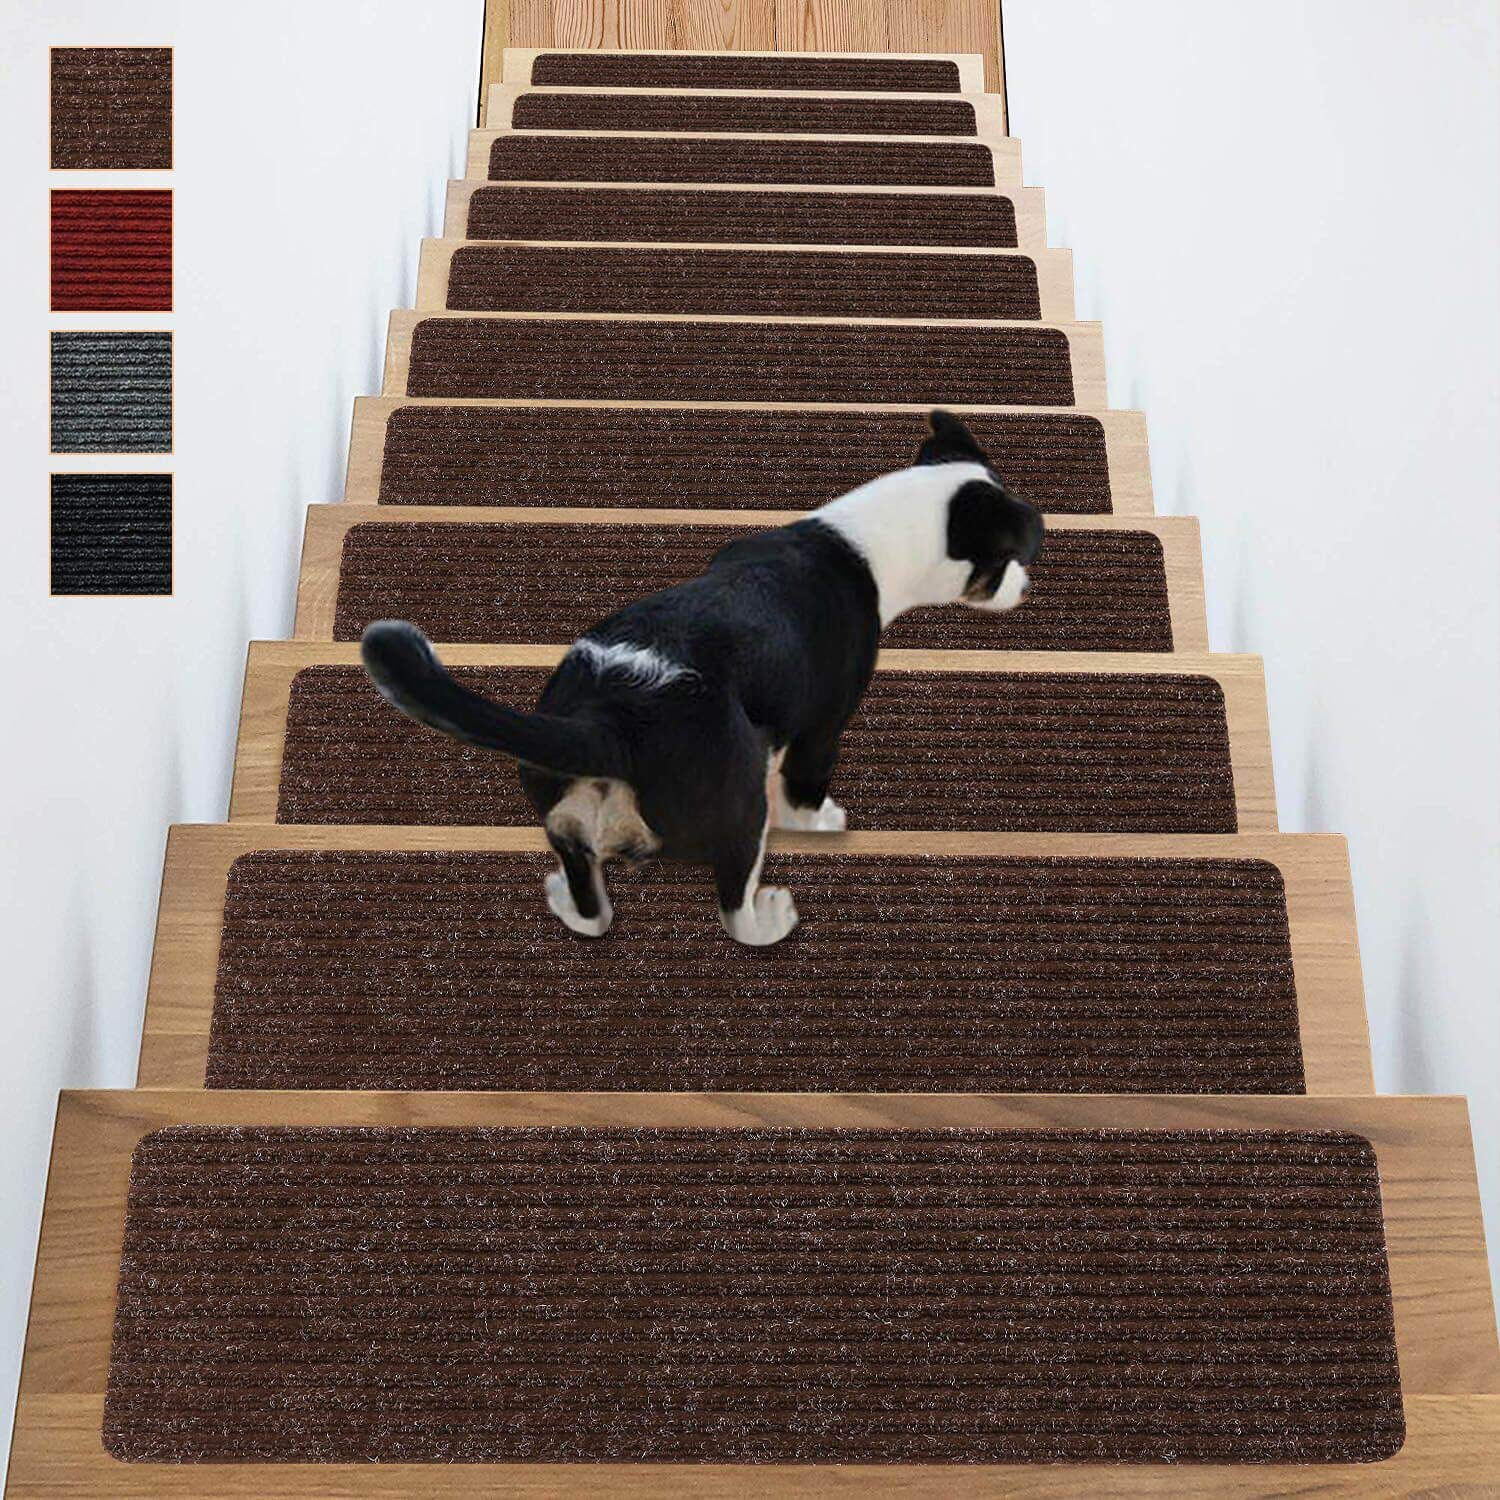 Stair Treads Non-Slip Carpet Indoor Set of 14 Brown Carpet Stair Tread Treads Stair Rugs Mats Rubber Backing (30 x 8 inch),(Brown, Set of 14) by Antdle